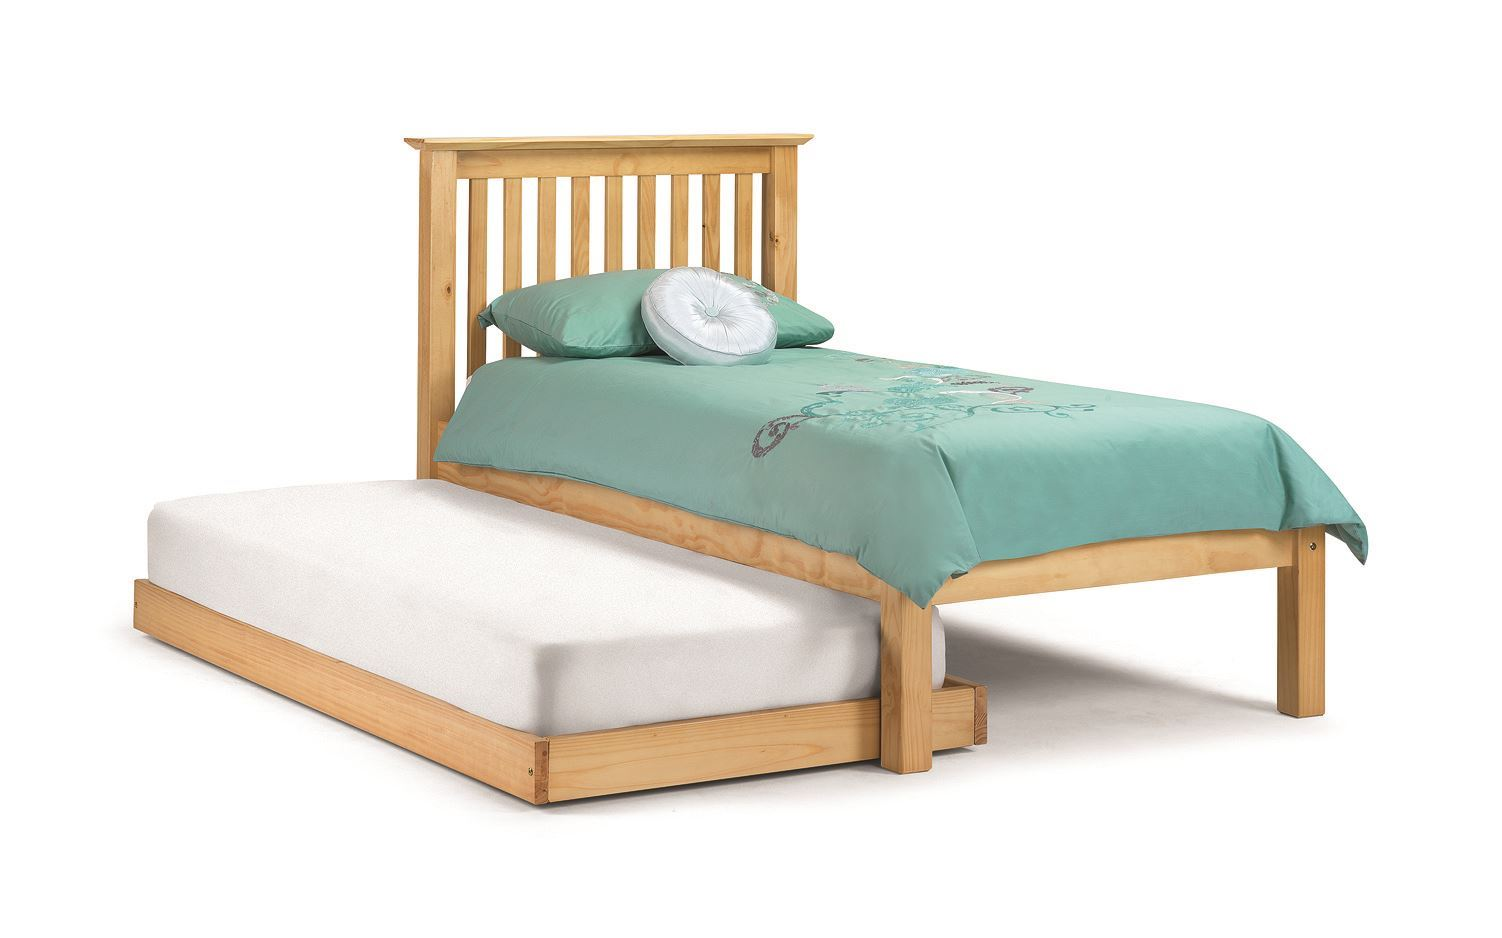 Hideaway Guest Bed Happy Beds Barcelona Hideaway Guest Bed 3ft Single White Pine Wood